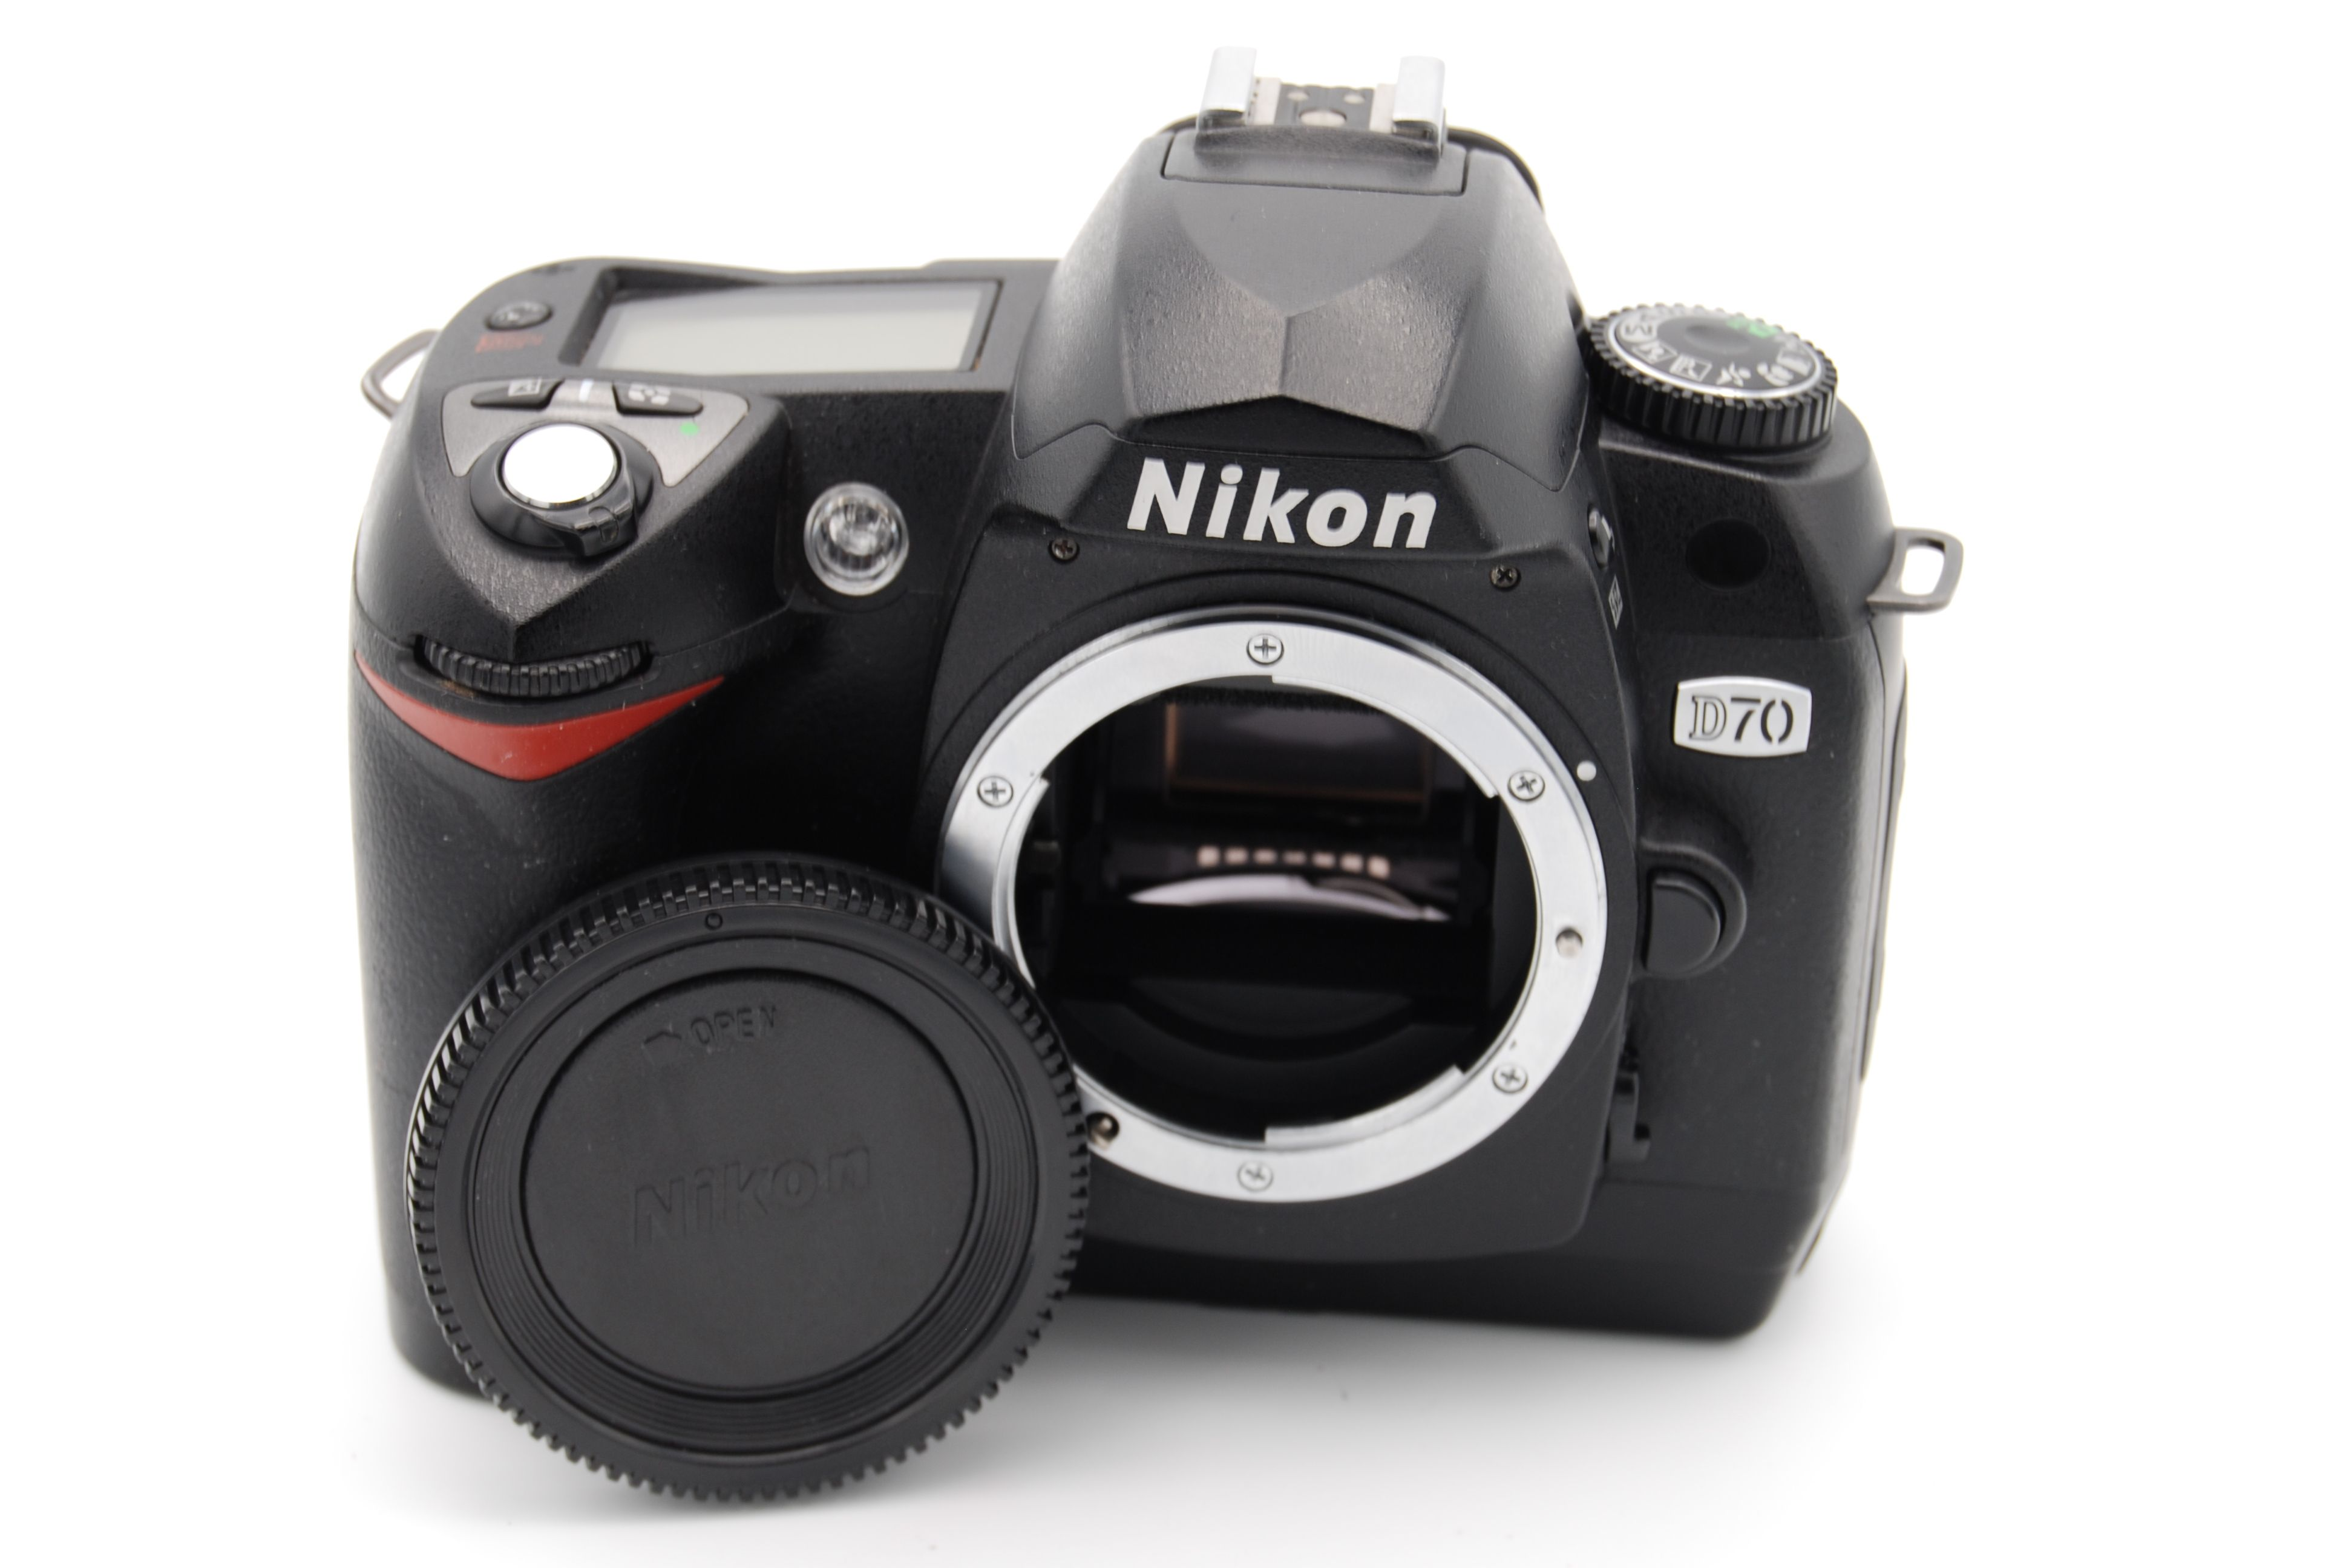 nikon d70 6 1mp 1 8 u2033 screen digital slr camera body only 18208252145 rh ebay com Nikon D70 Ir Nikon D70 Camera